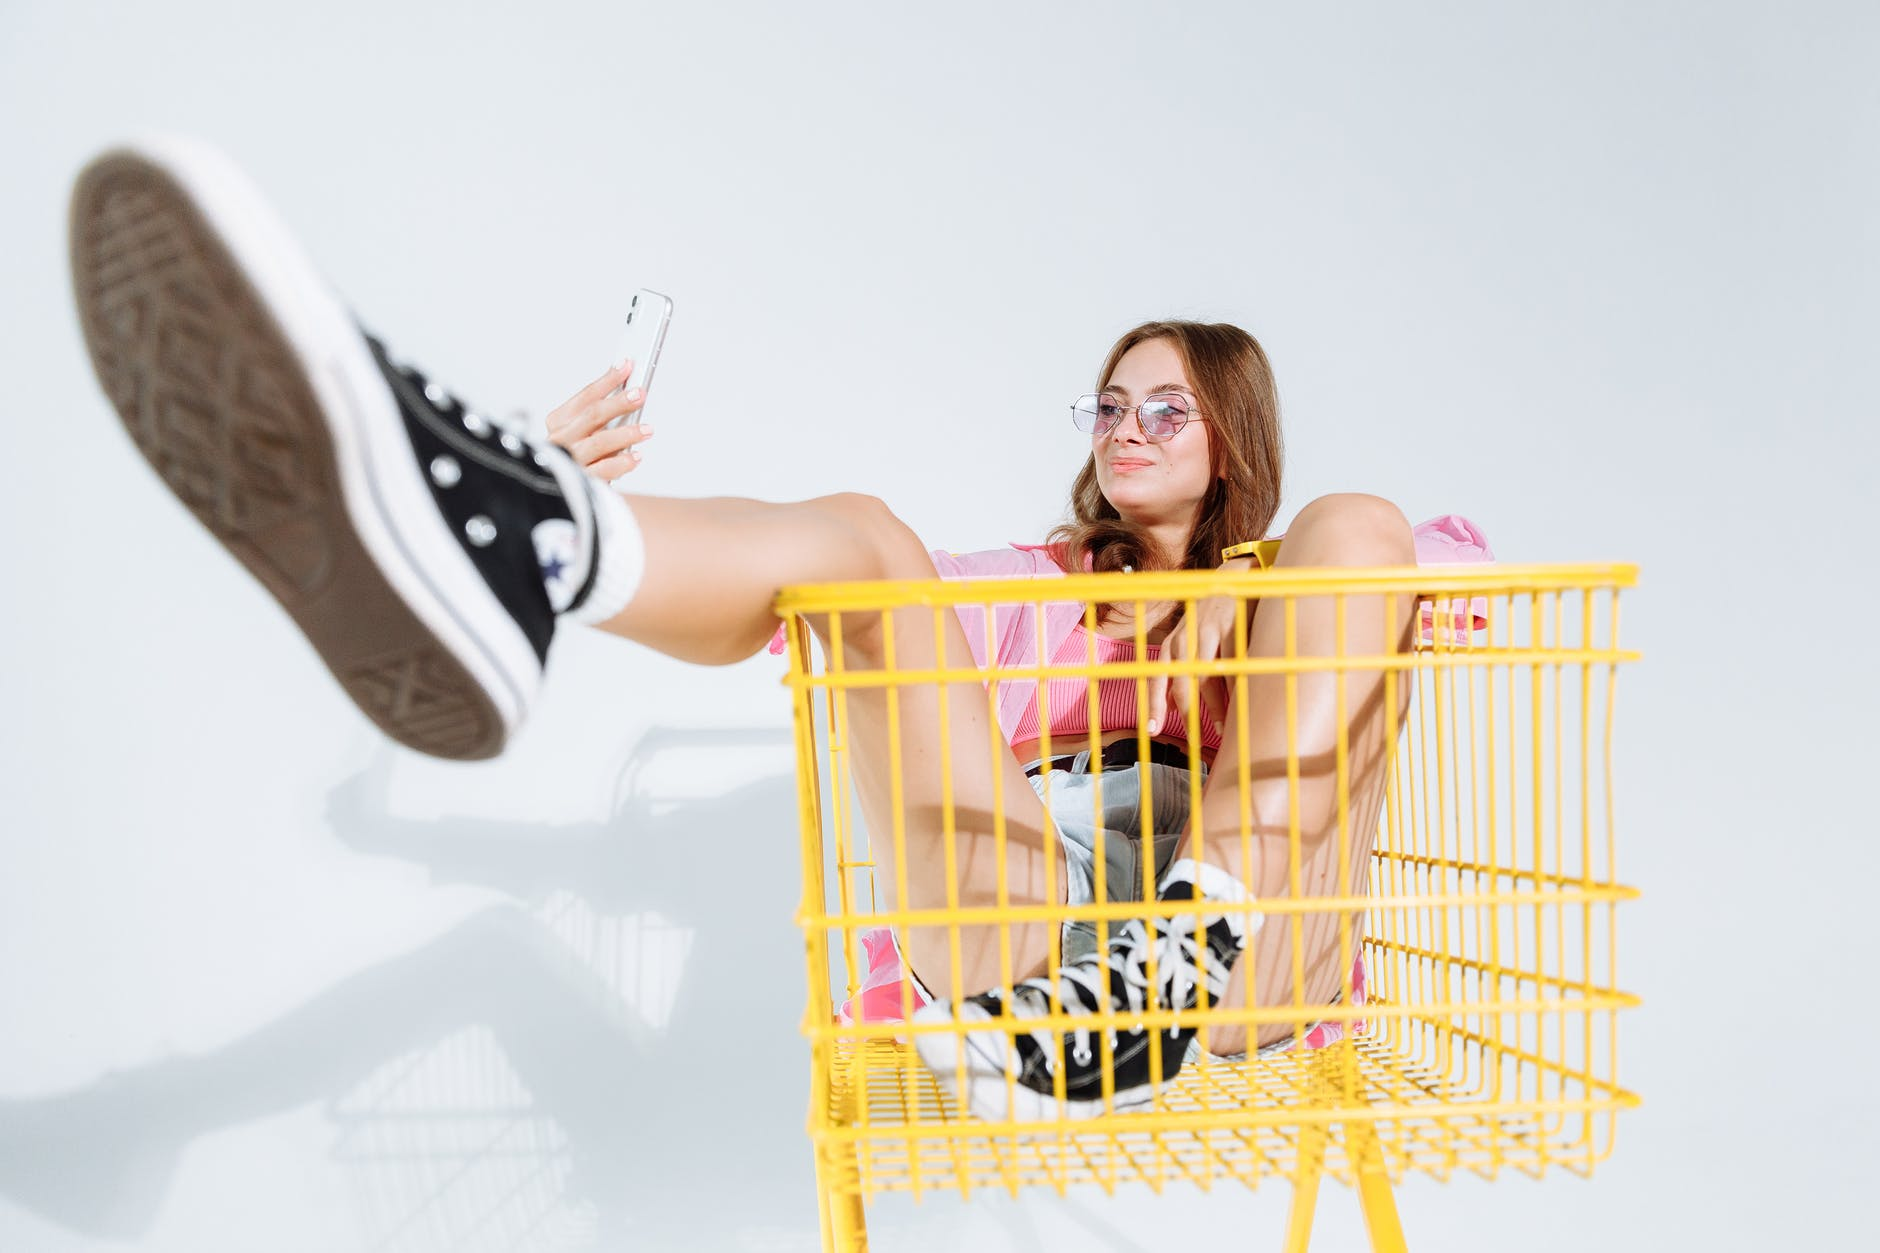 woman in black and white converse all star high top sneakers sitting on yellow shopping cart